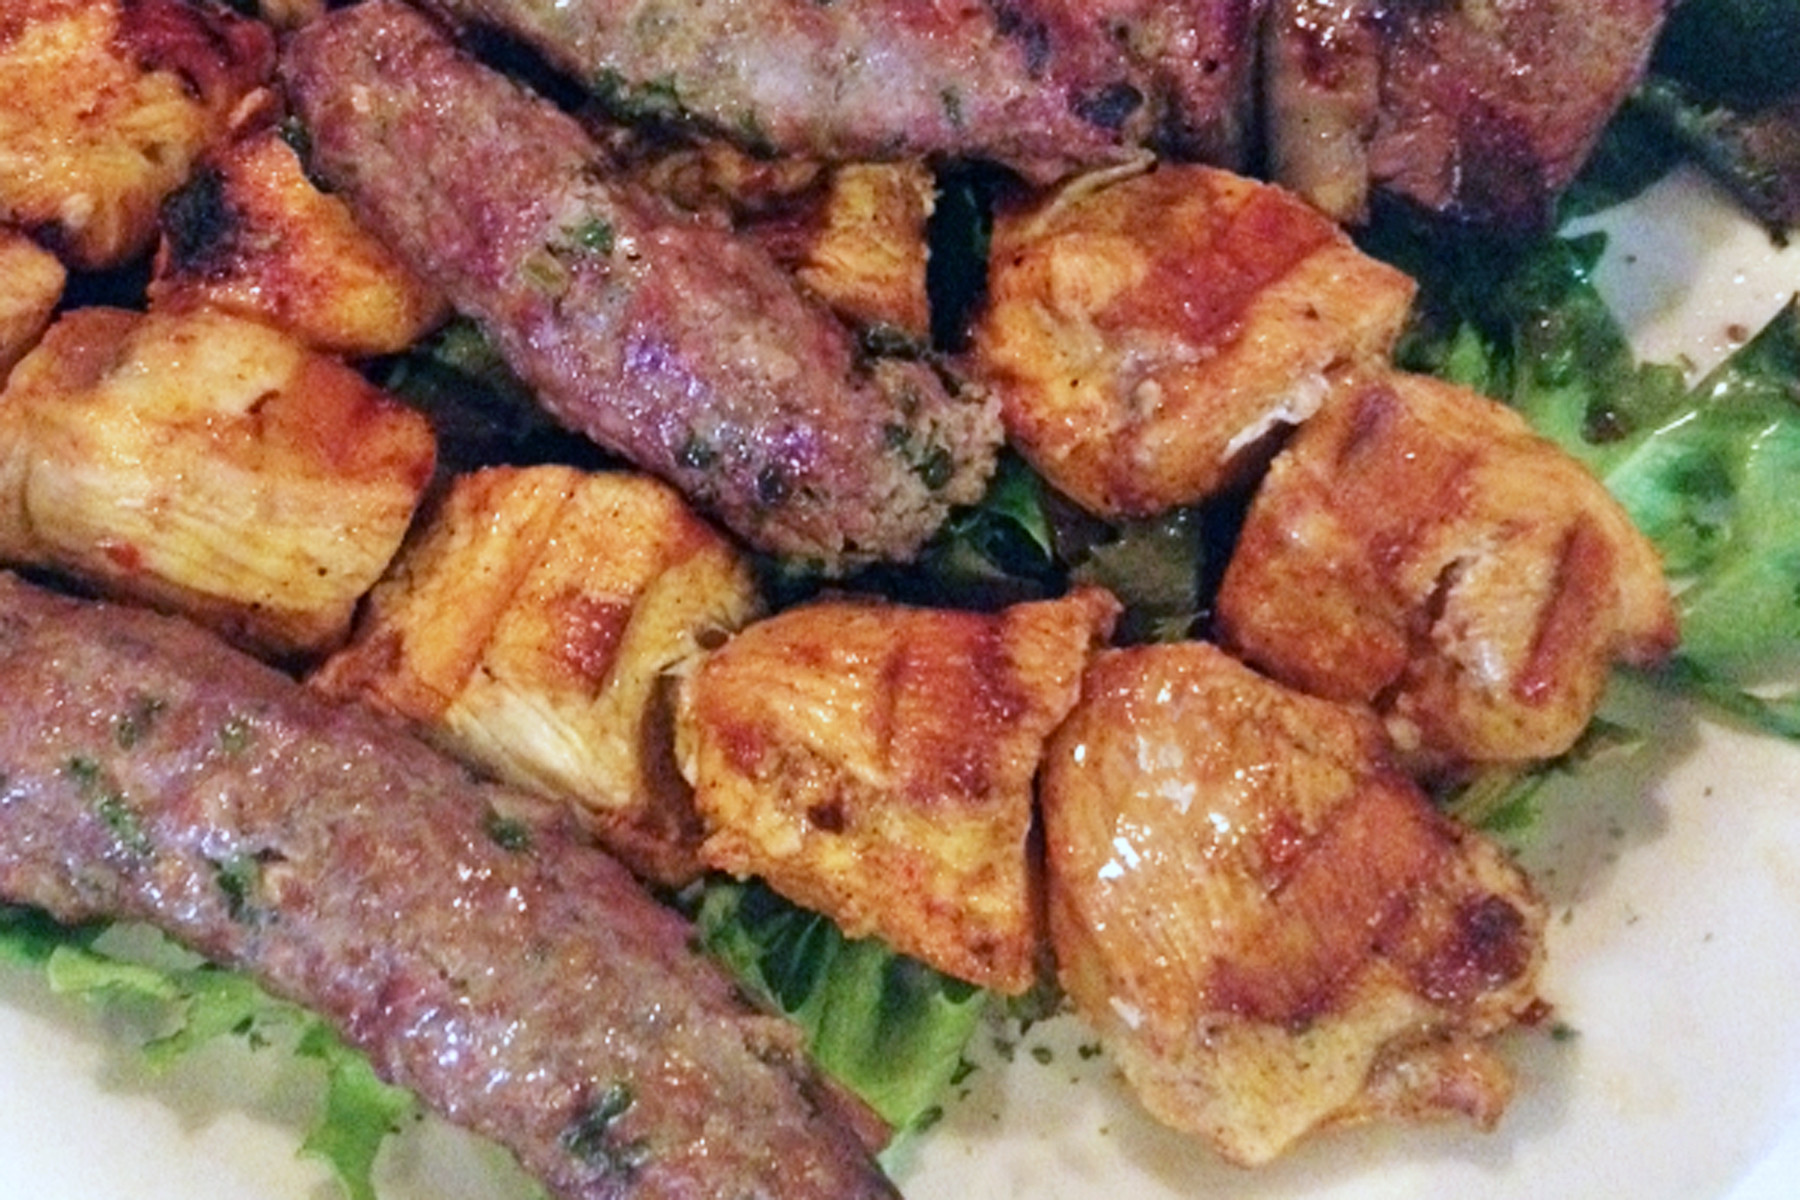 Mandaloun's various kebabs – like these chicken and minced lamb versions – are served with rice and sautéed vegetables.